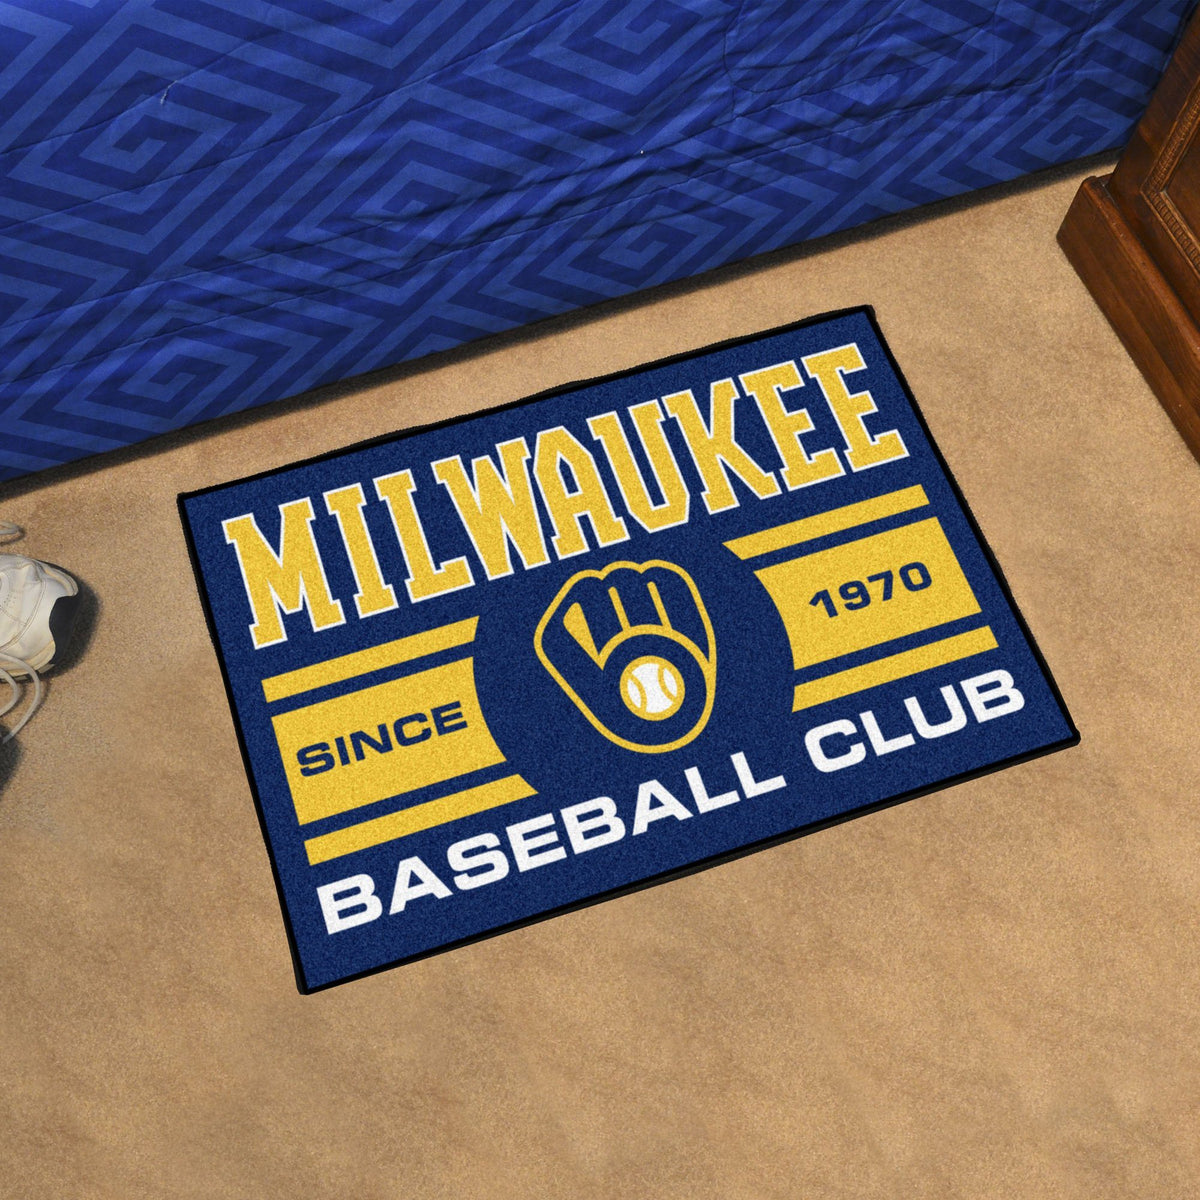 MLB - Uniform Starter Mat MLB Mats, Rectangular Mats, Uniform Starter Mat, MLB, Home Fan Mats Milwaukee Brewers